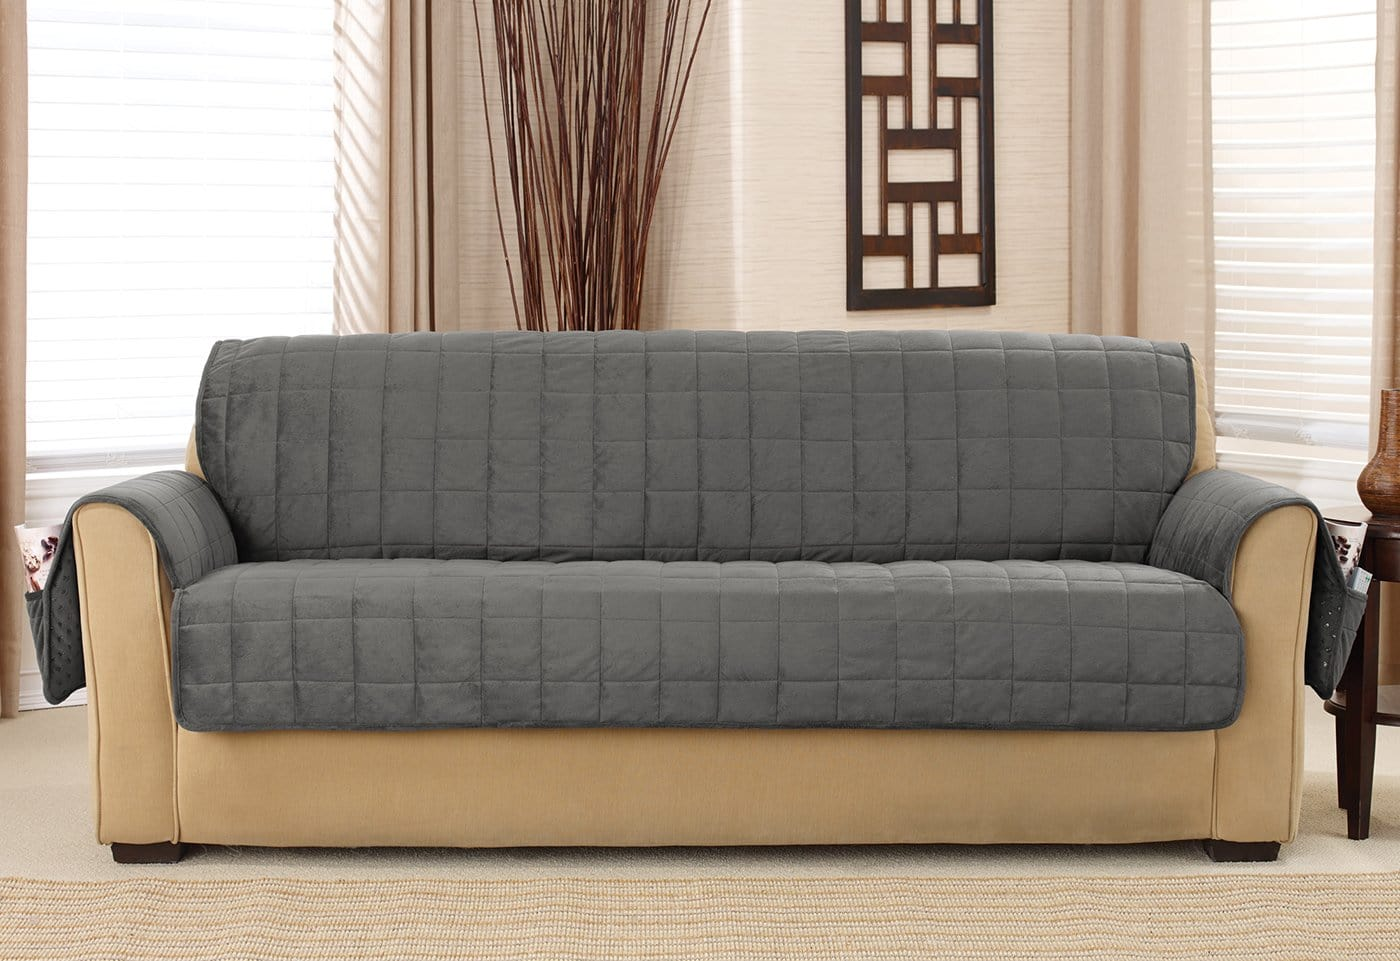 Deep Pile Velvet Sofa Furniture Cover 100% Polyester Pet Furniture Cover Machine Washable - Sofa / Carbon Gray